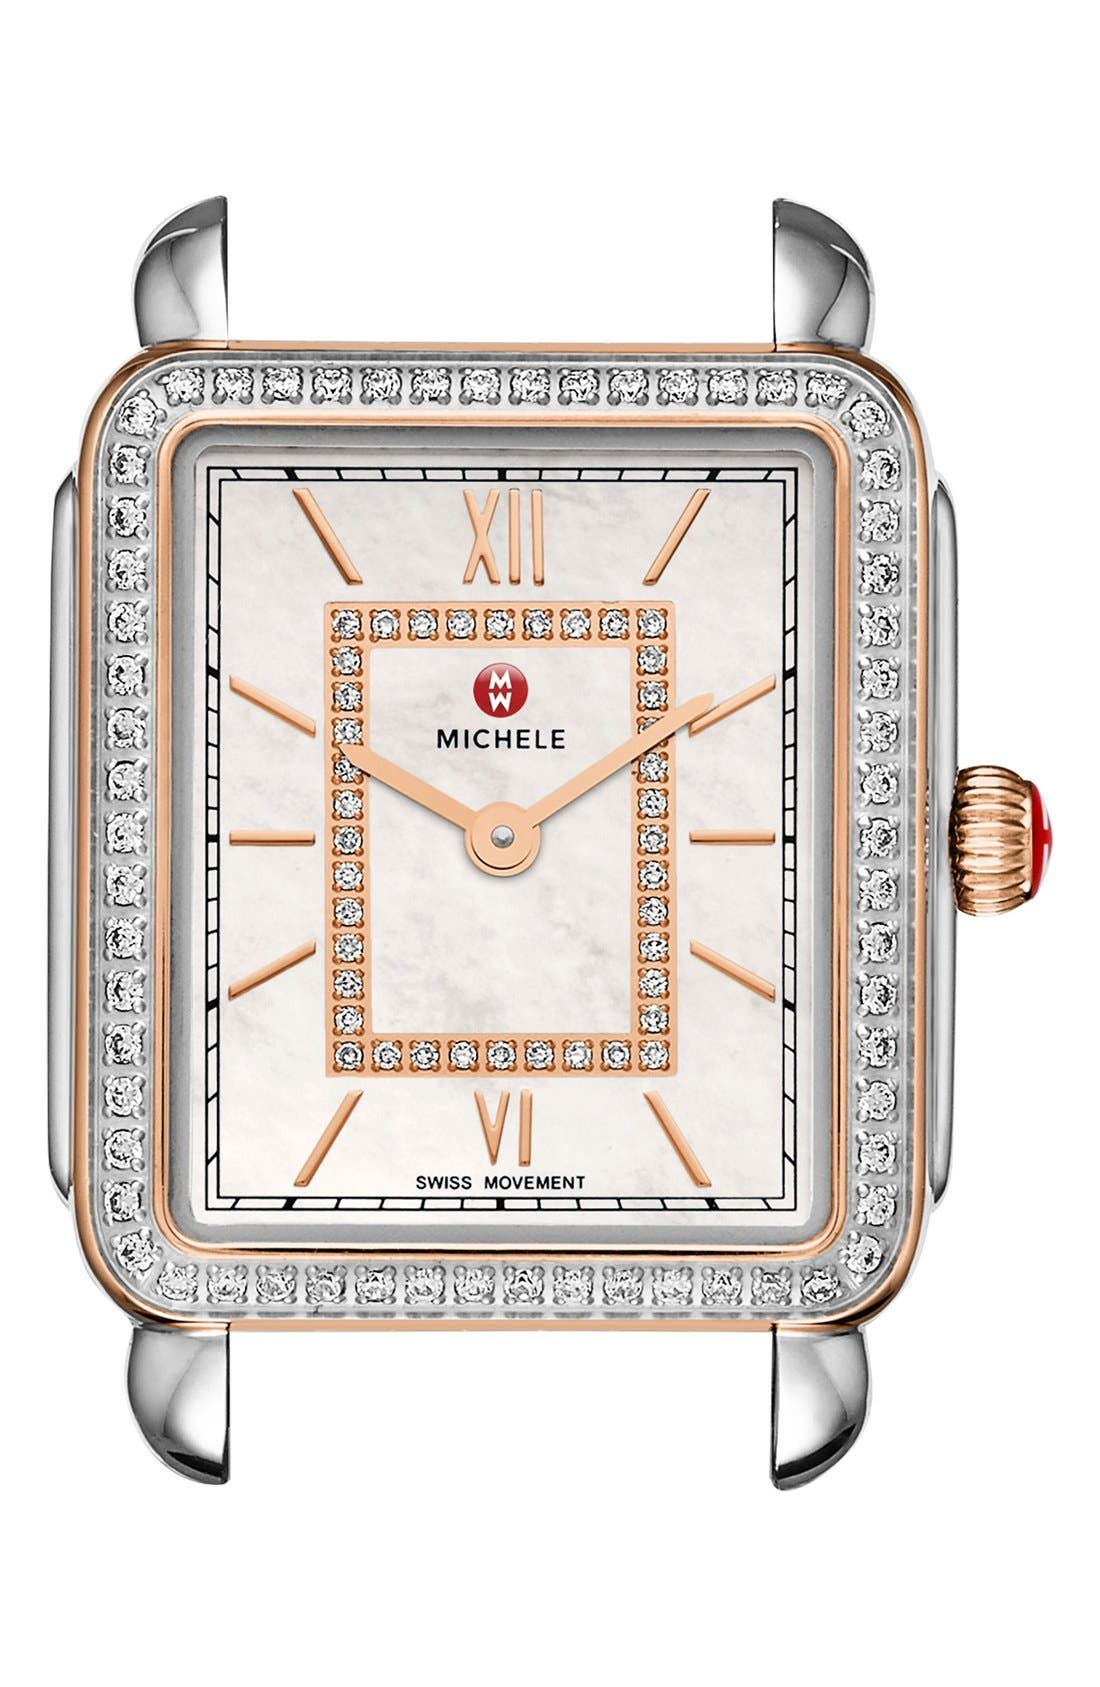 Main Image - MICHELE Deco II Mid Diamond Dial Watch Case, 26mm x 28mm